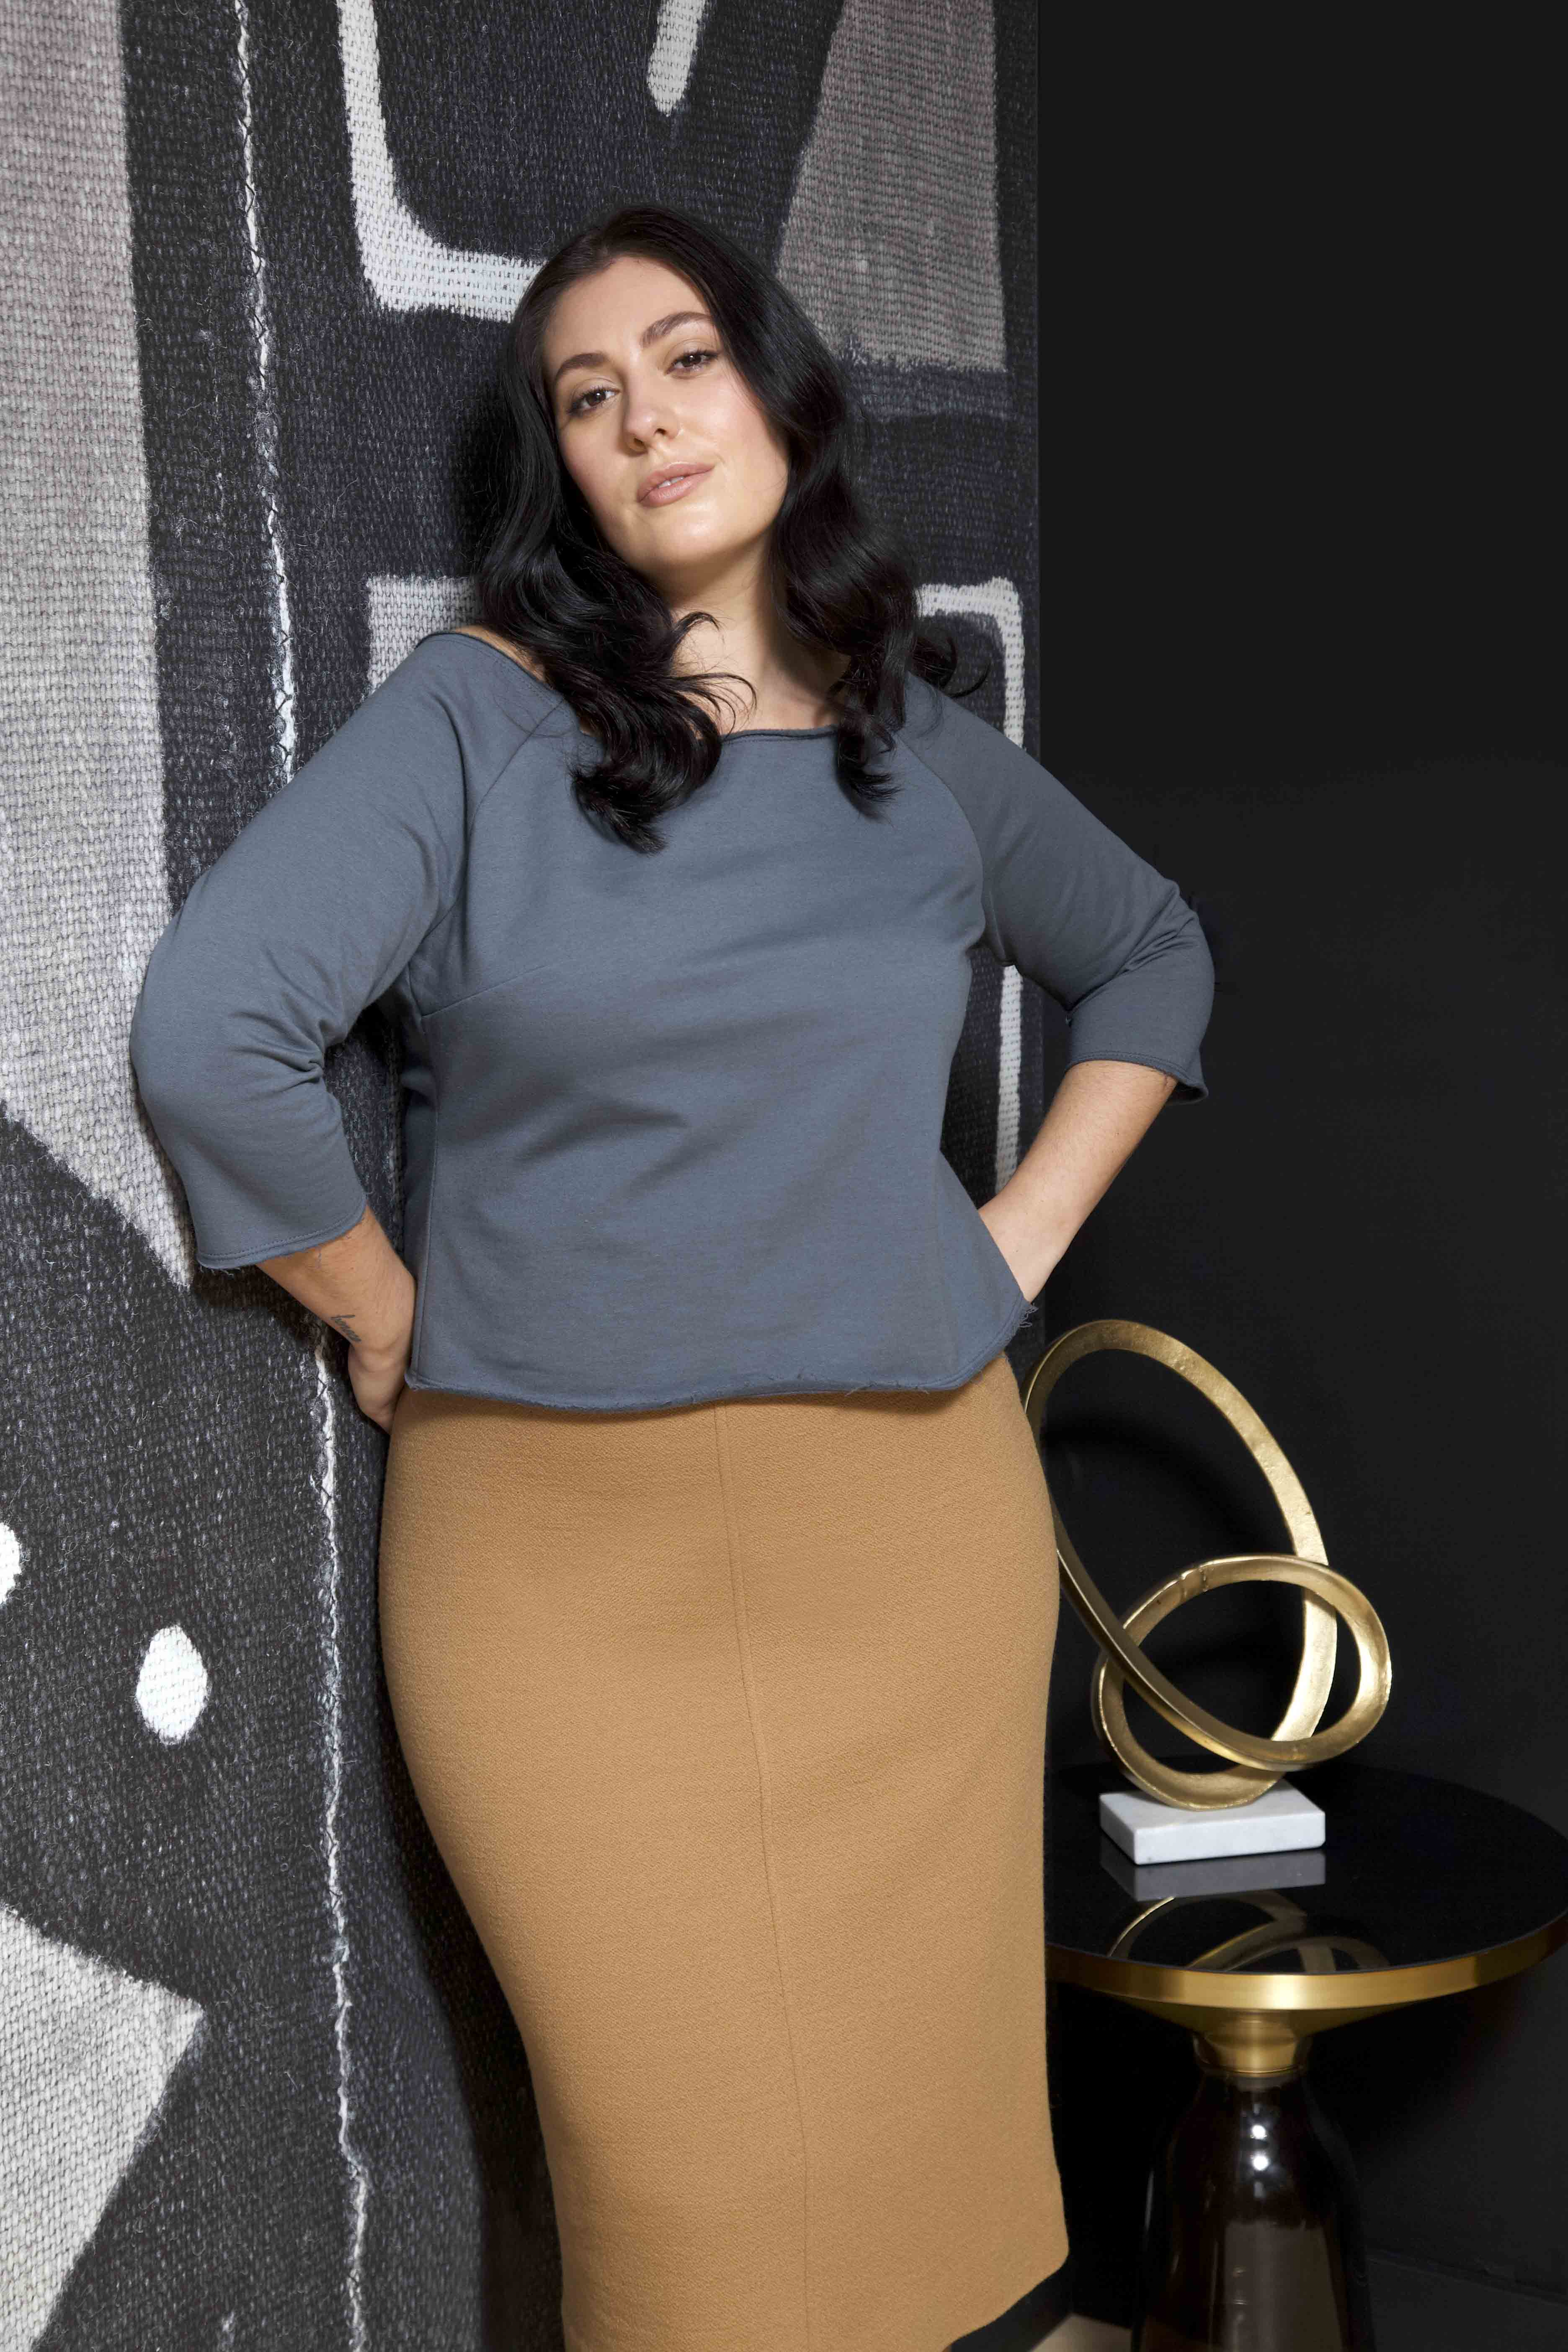 LISA AVIVA-A_W 19_20 Fleece Top in Marine and Pebbled Wool Skirt in Camel